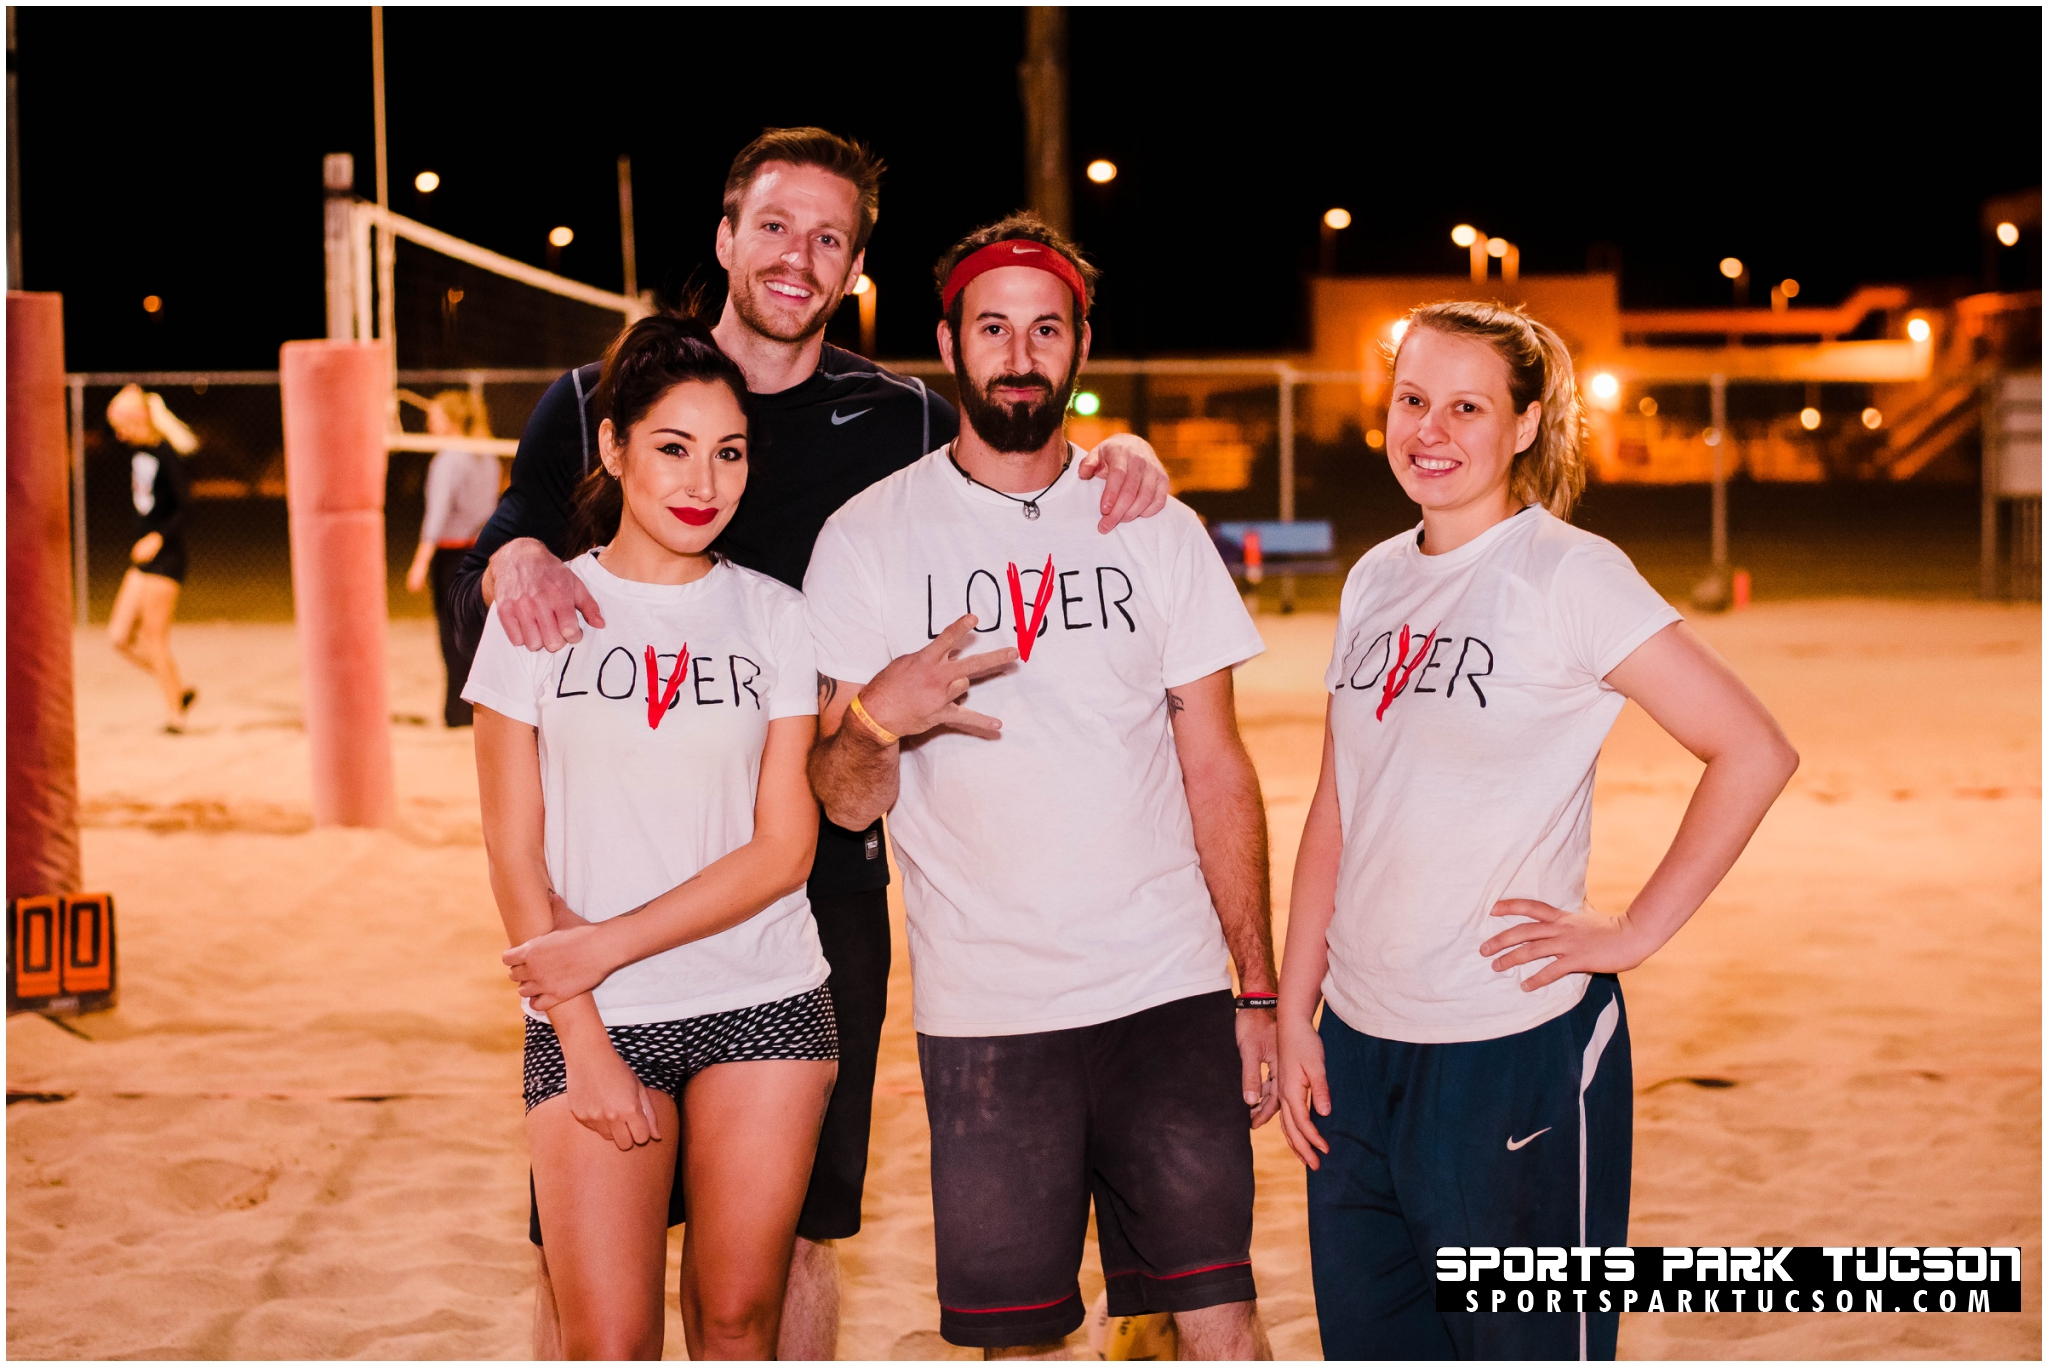 Volleyball Wed Co-ed 4 v 4 - Gold, Team: The Losers Club